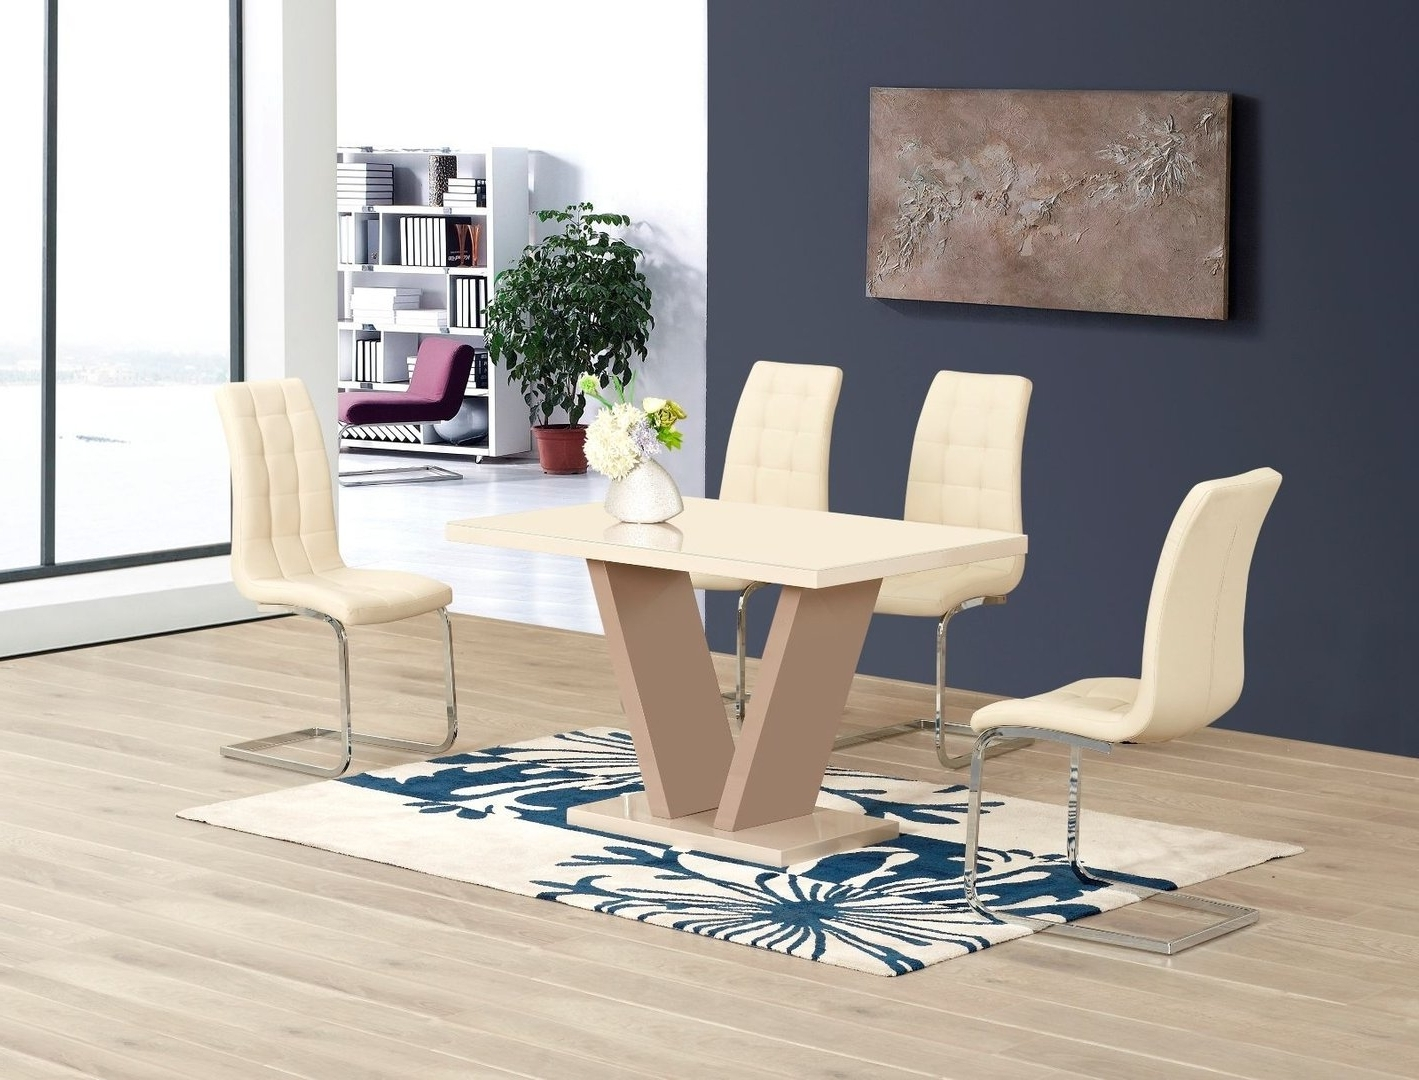 Cream High Gloss Glass Dining Table And 6 Chairs – Homegenies Within Best And Newest White Gloss Dining Tables And 6 Chairs (View 2 of 25)